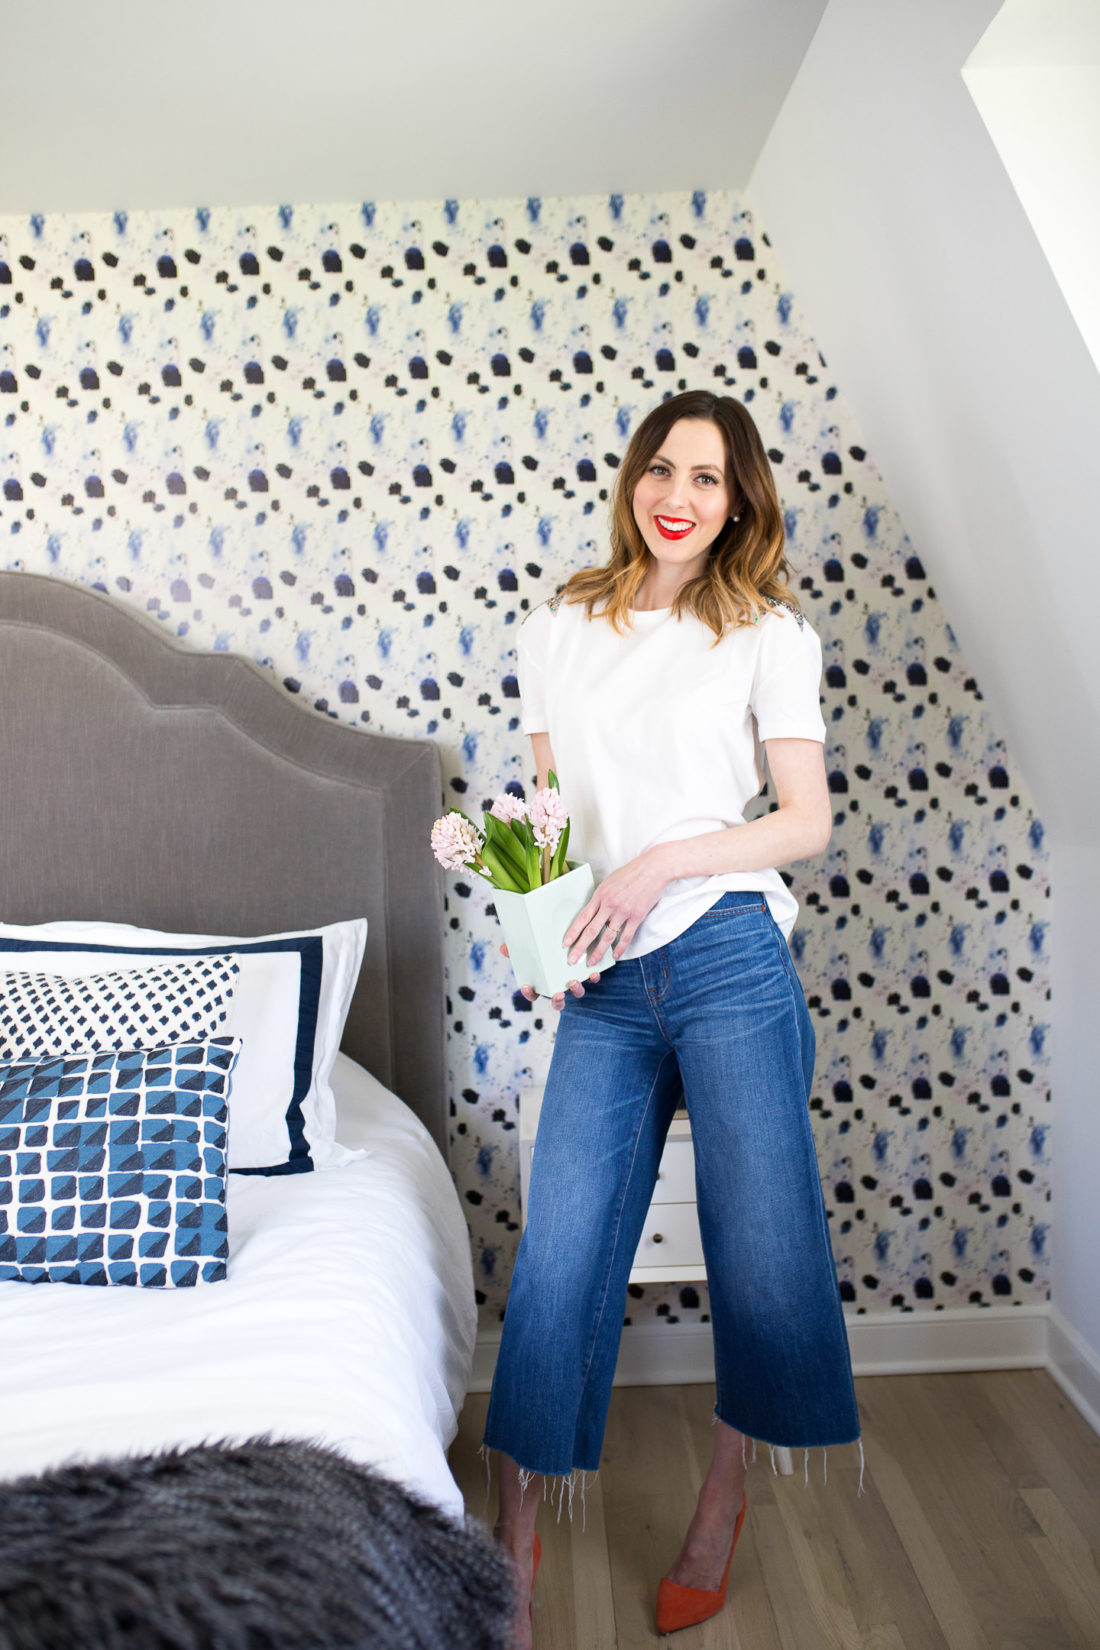 Eva Amurri Martino holds a vase of flowers in her newly updated guest bedroom at home in connectiut